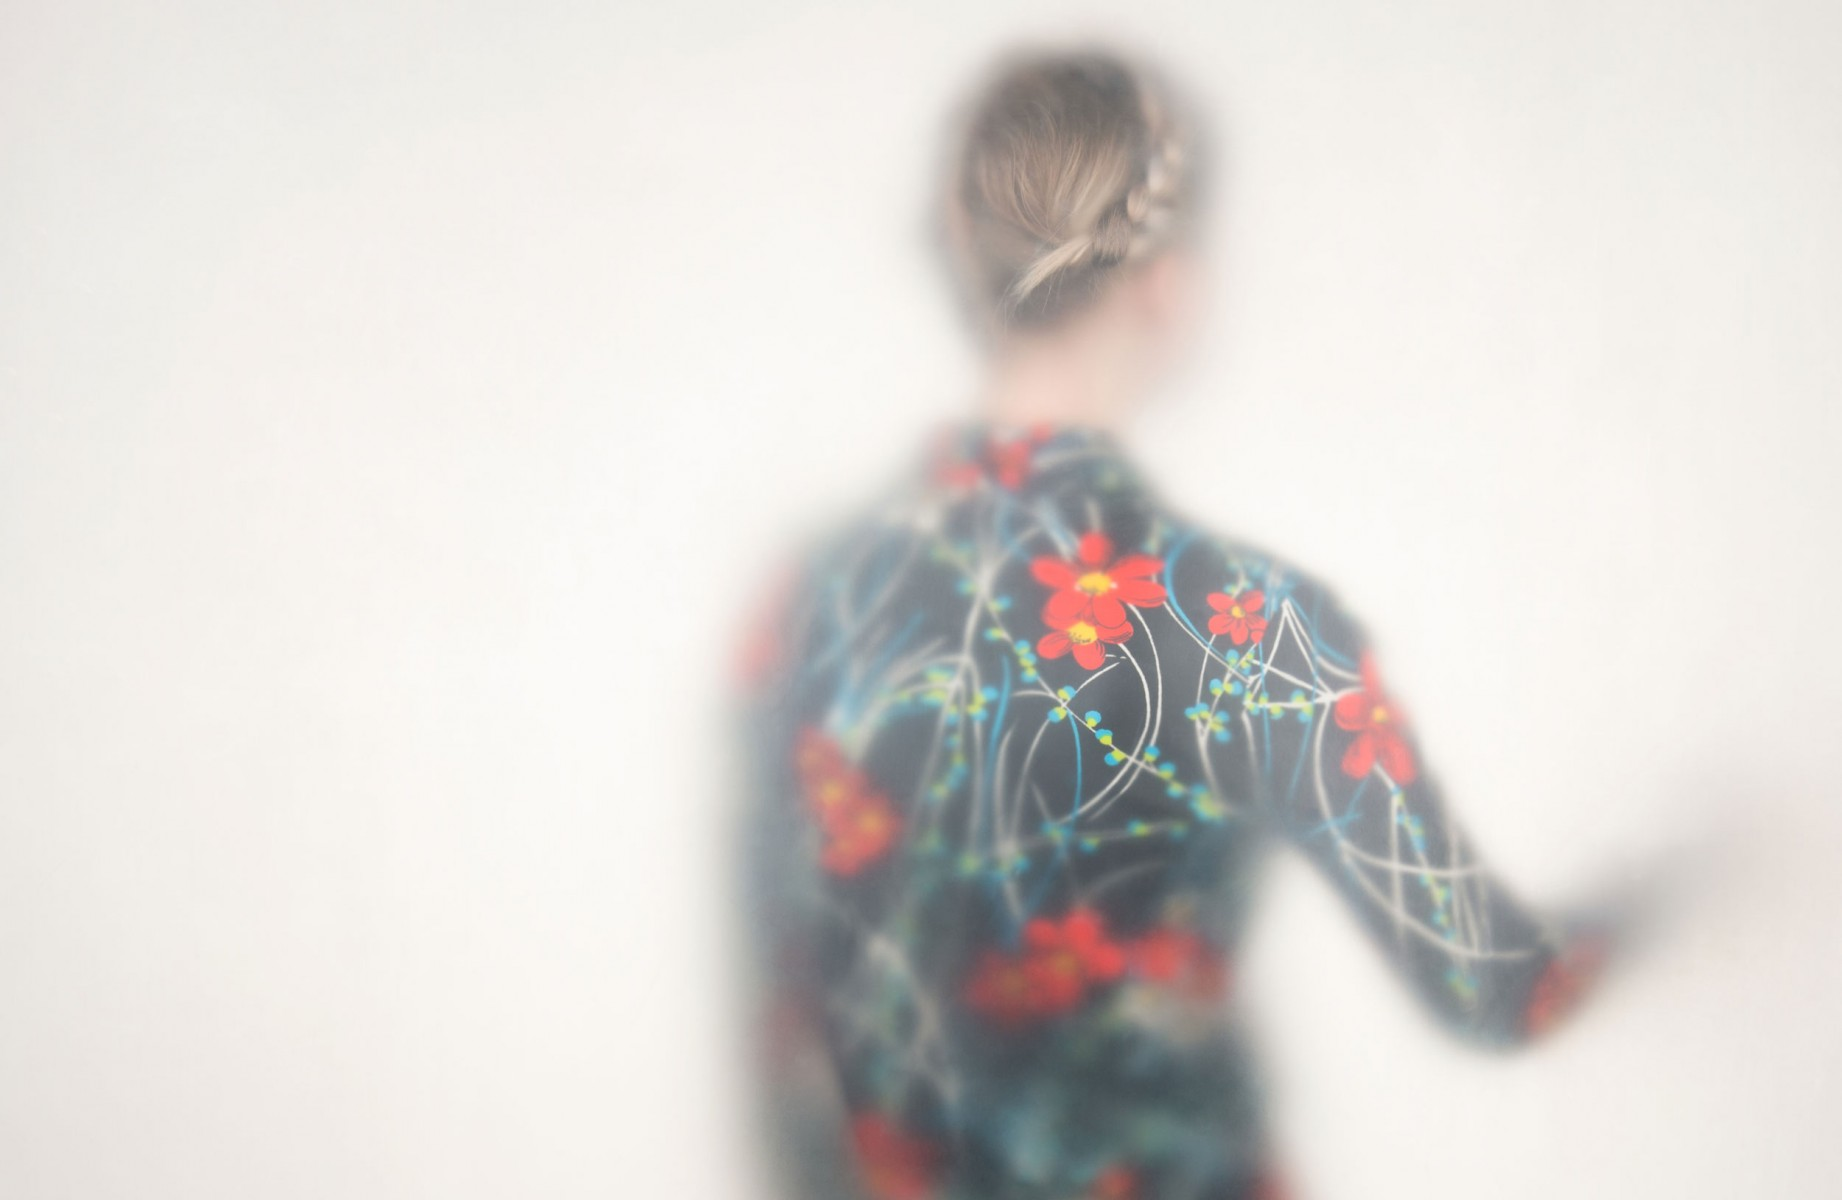 A woman in a patterned shirt